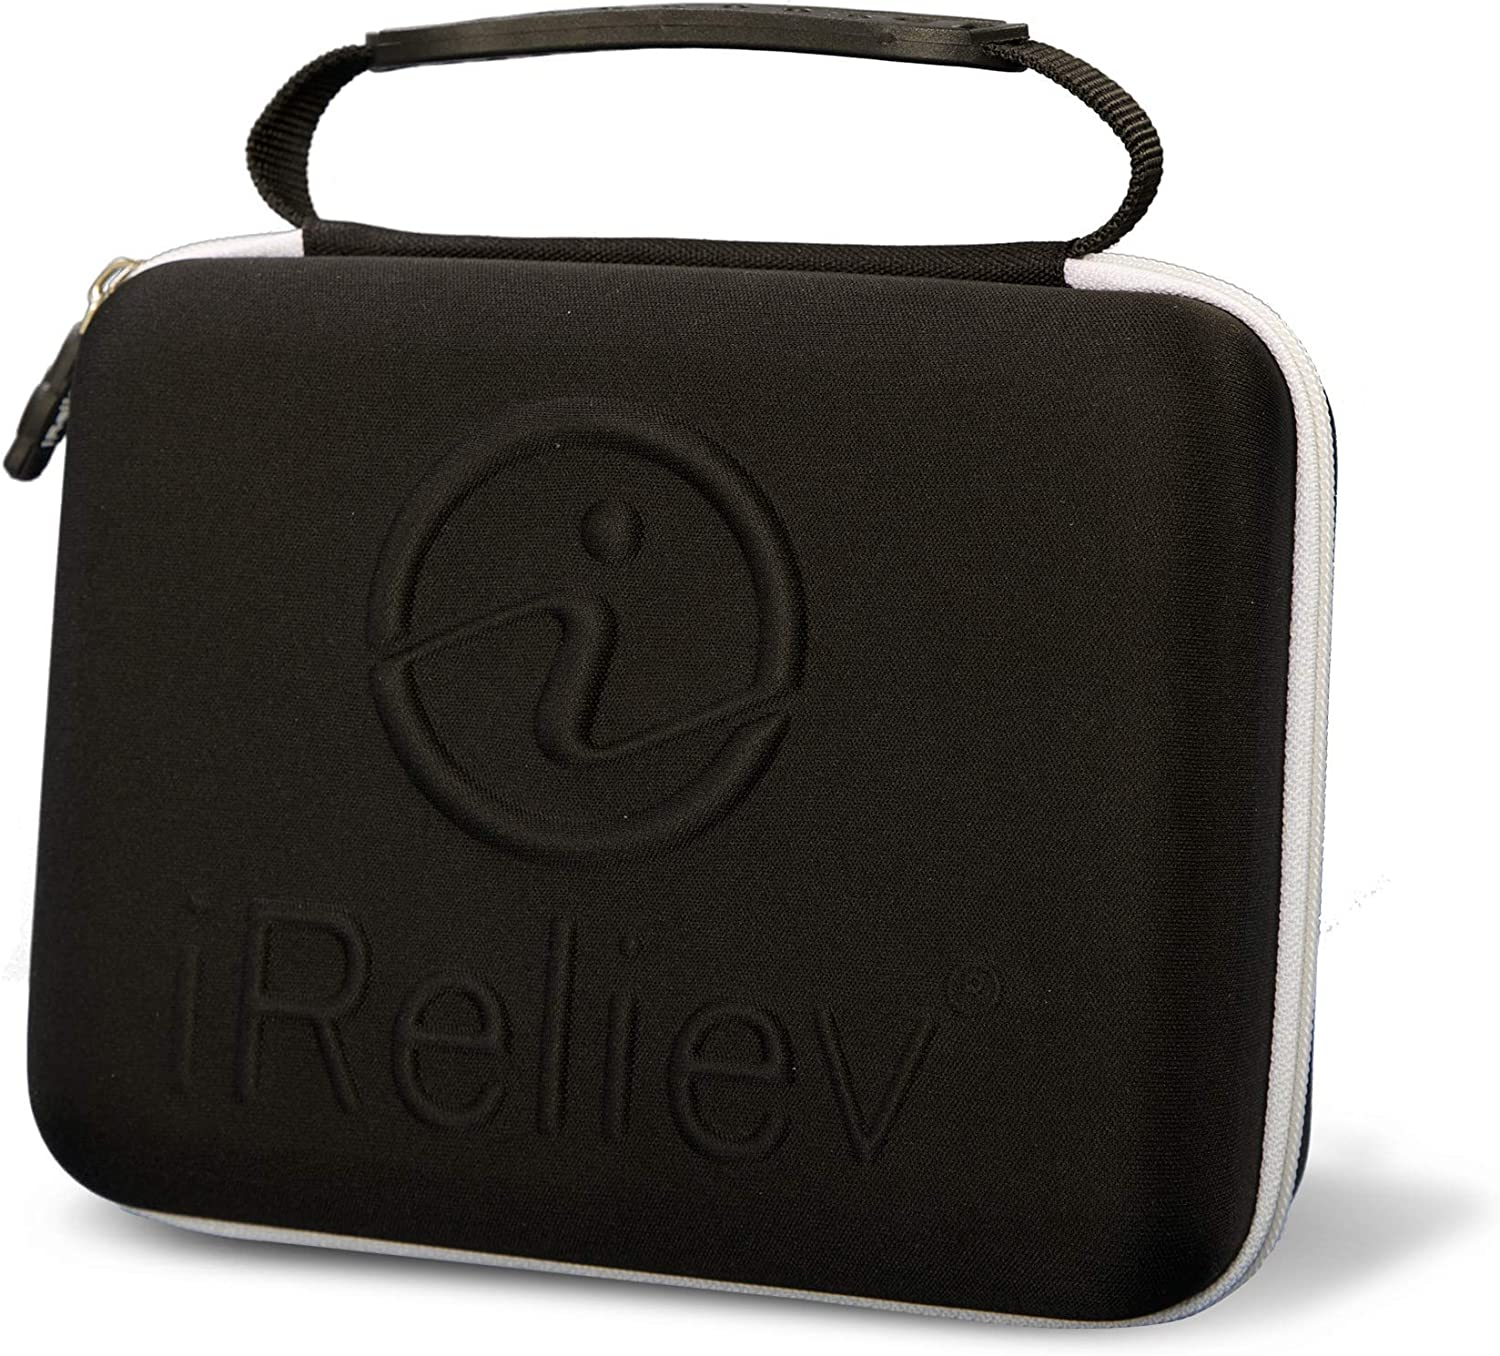 iReliev Protective Travel Carrying Case TENS or + Recommendation Your for Sale item